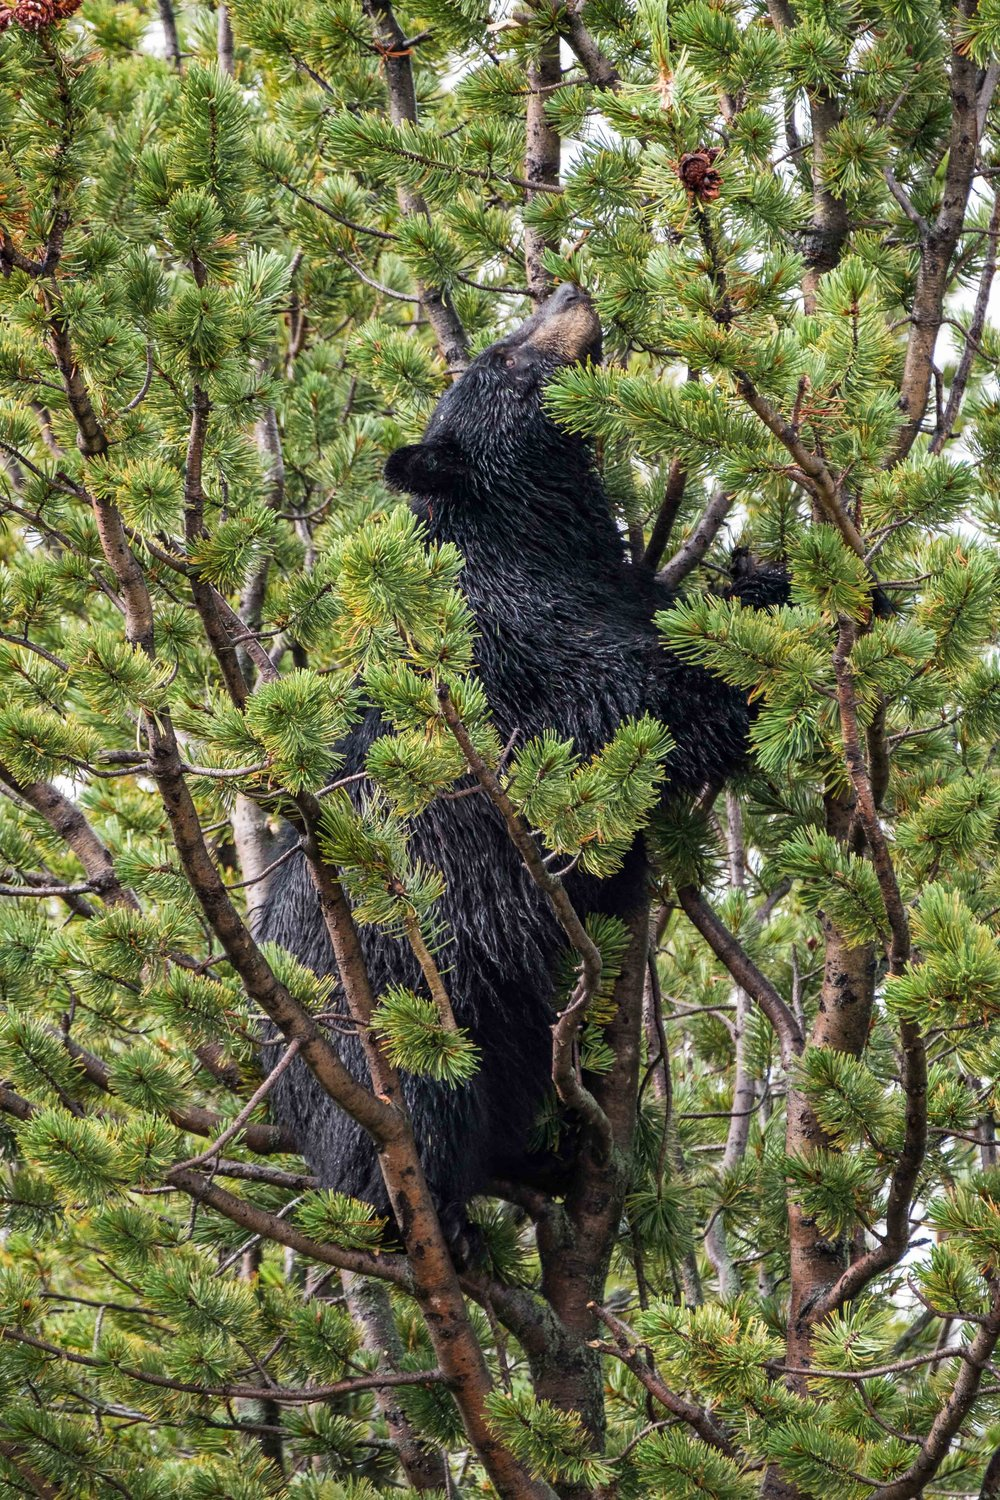 Black bears climb pine trees to get the delicious pinecones.